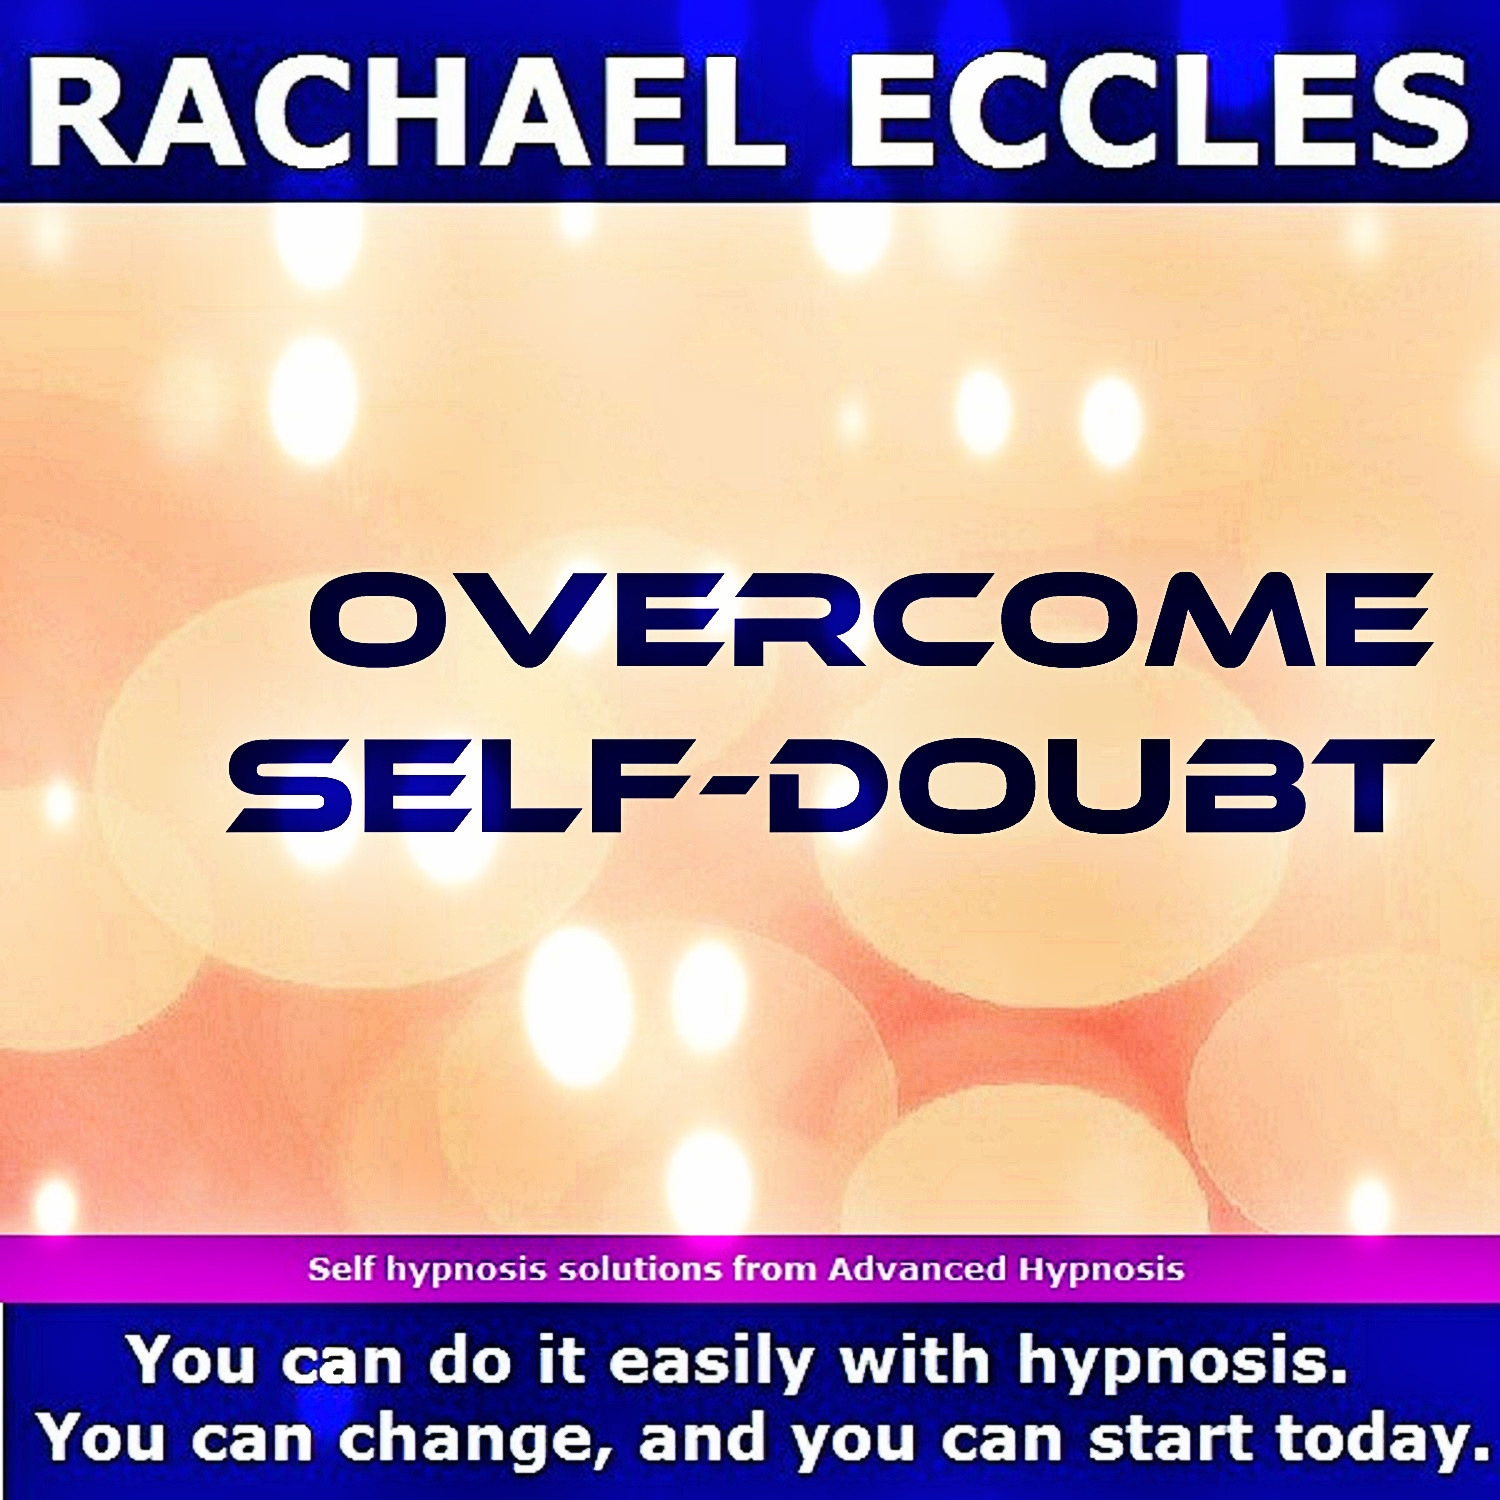 Overcome self doubt, become more sure of yourself, trust your own opinions  Self Hypnosis MP3 download